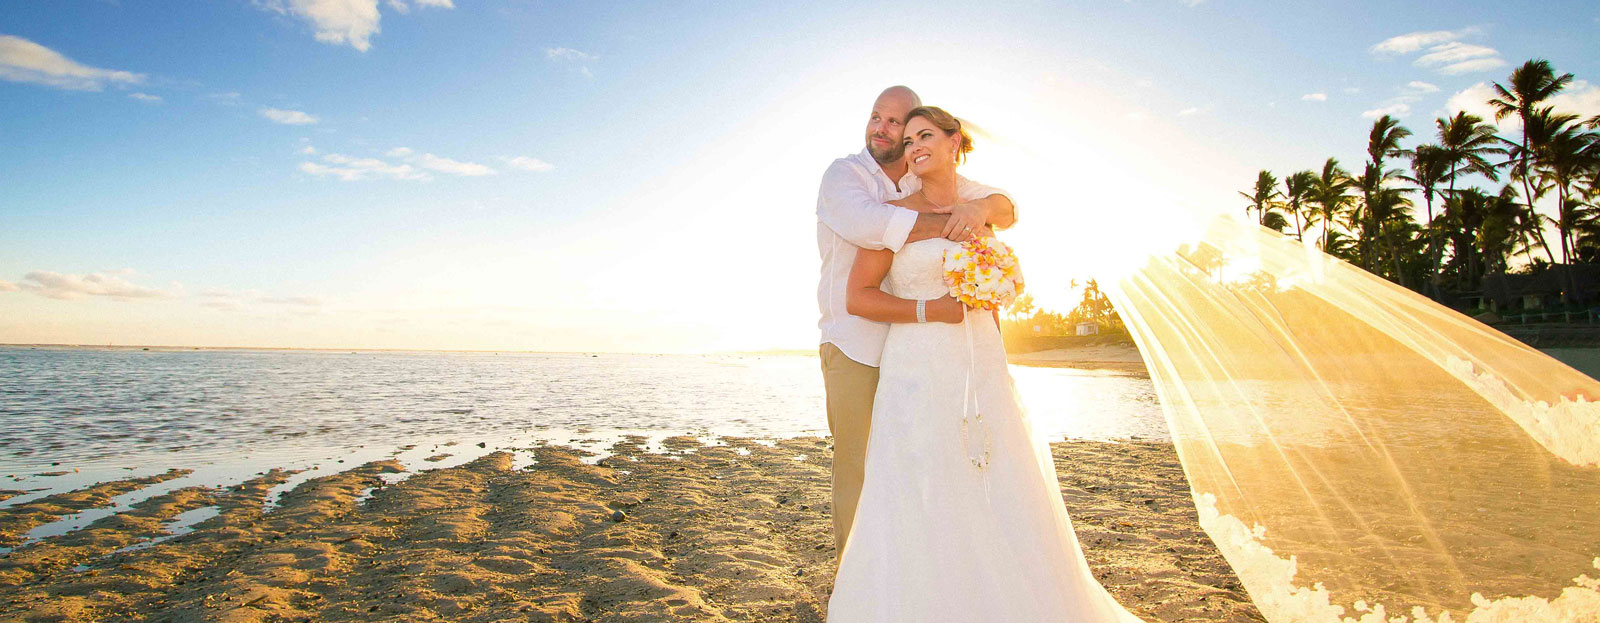 fiji weddings packages outrigger resort